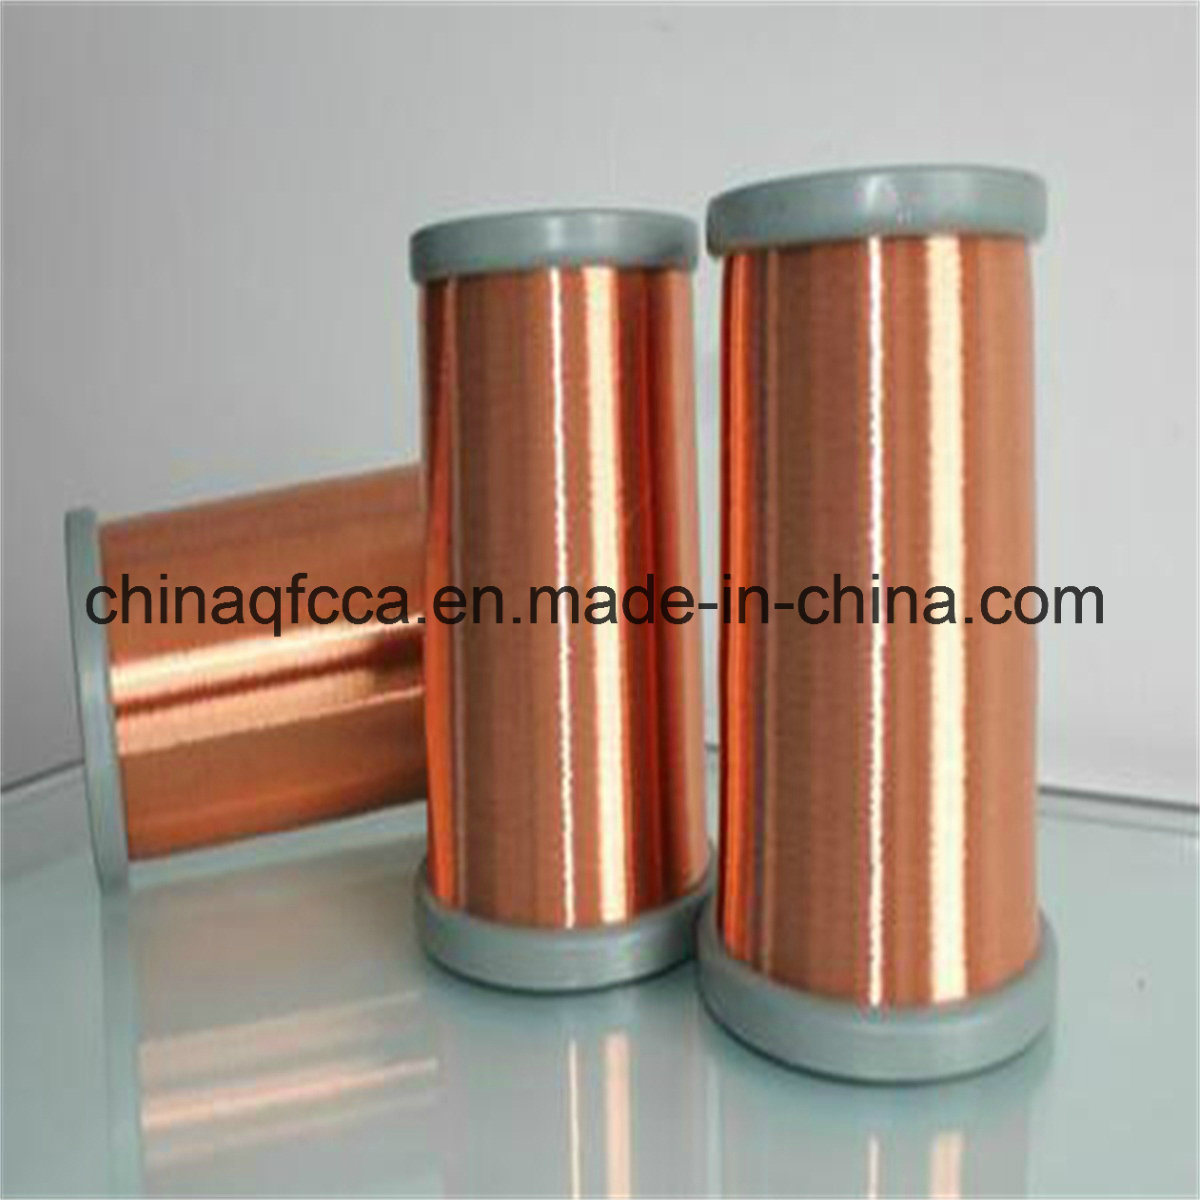 Solderable Polyurethane Enameled Copper Wire, Class 155